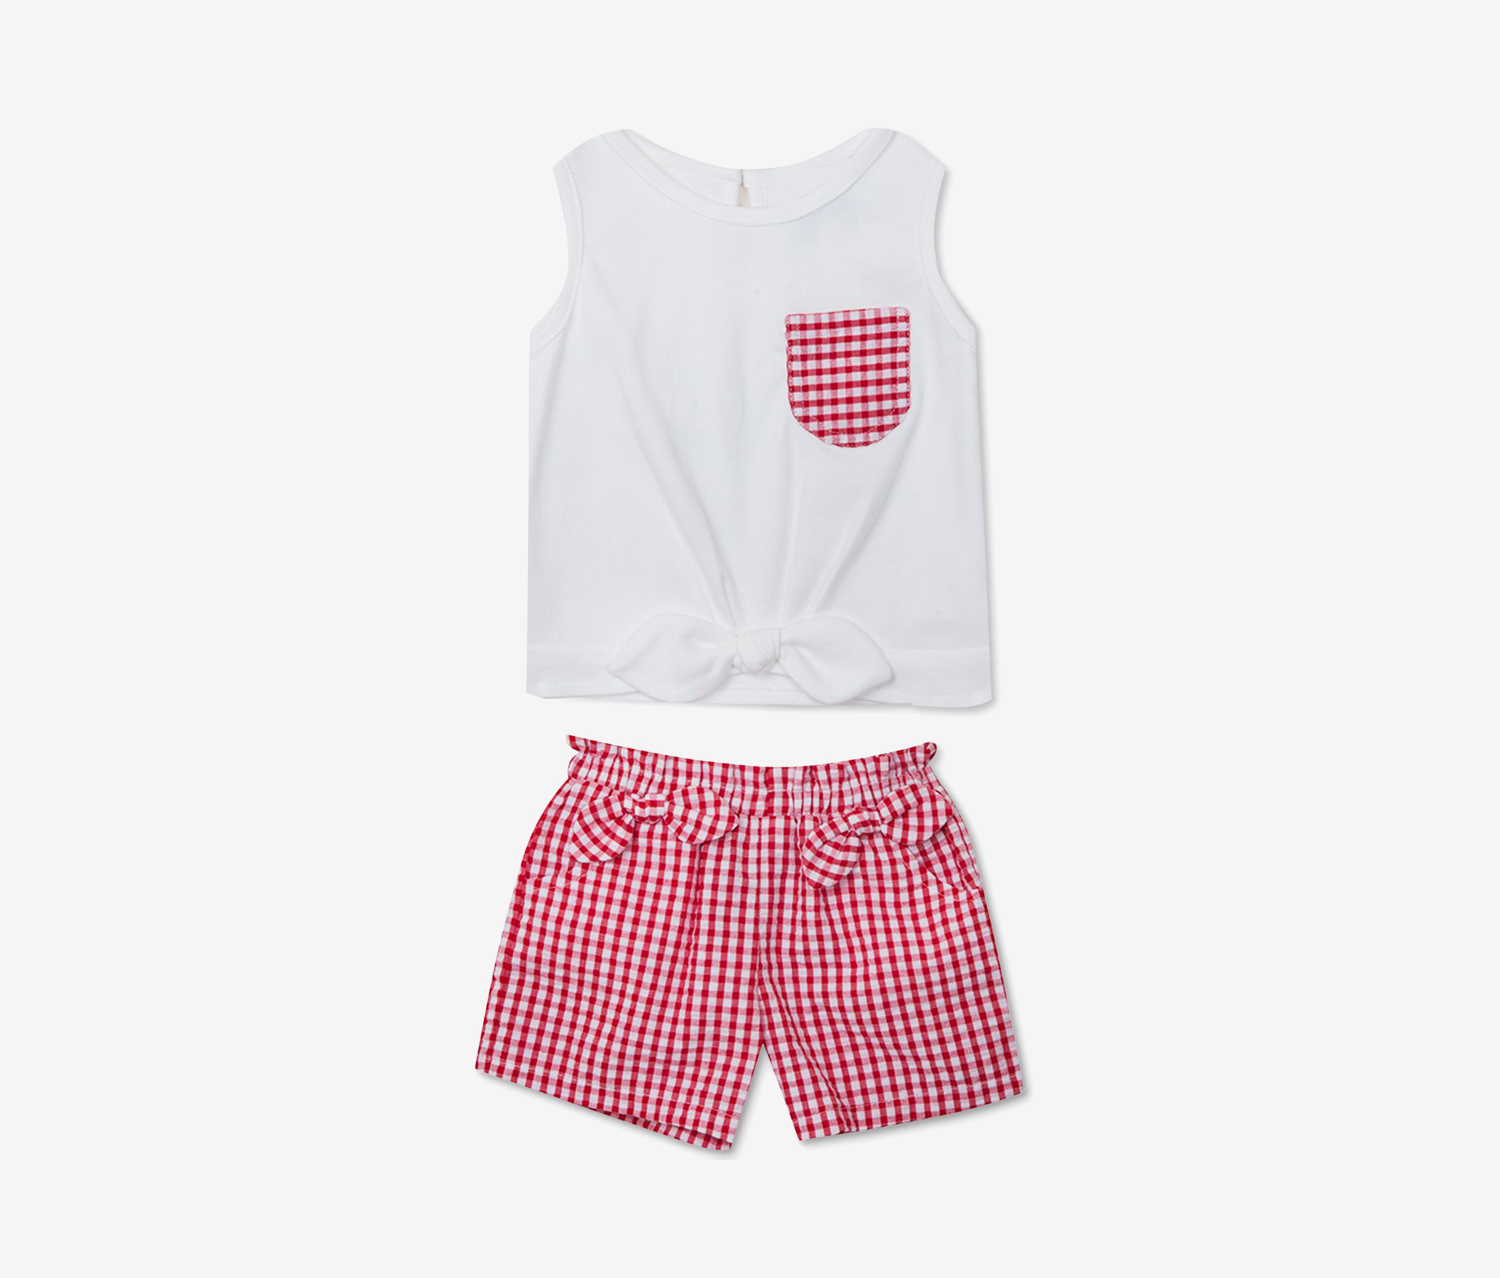 Baby Girls 2-Pc. Bow-Trim Top & Gingham Shorts Set, White/Red